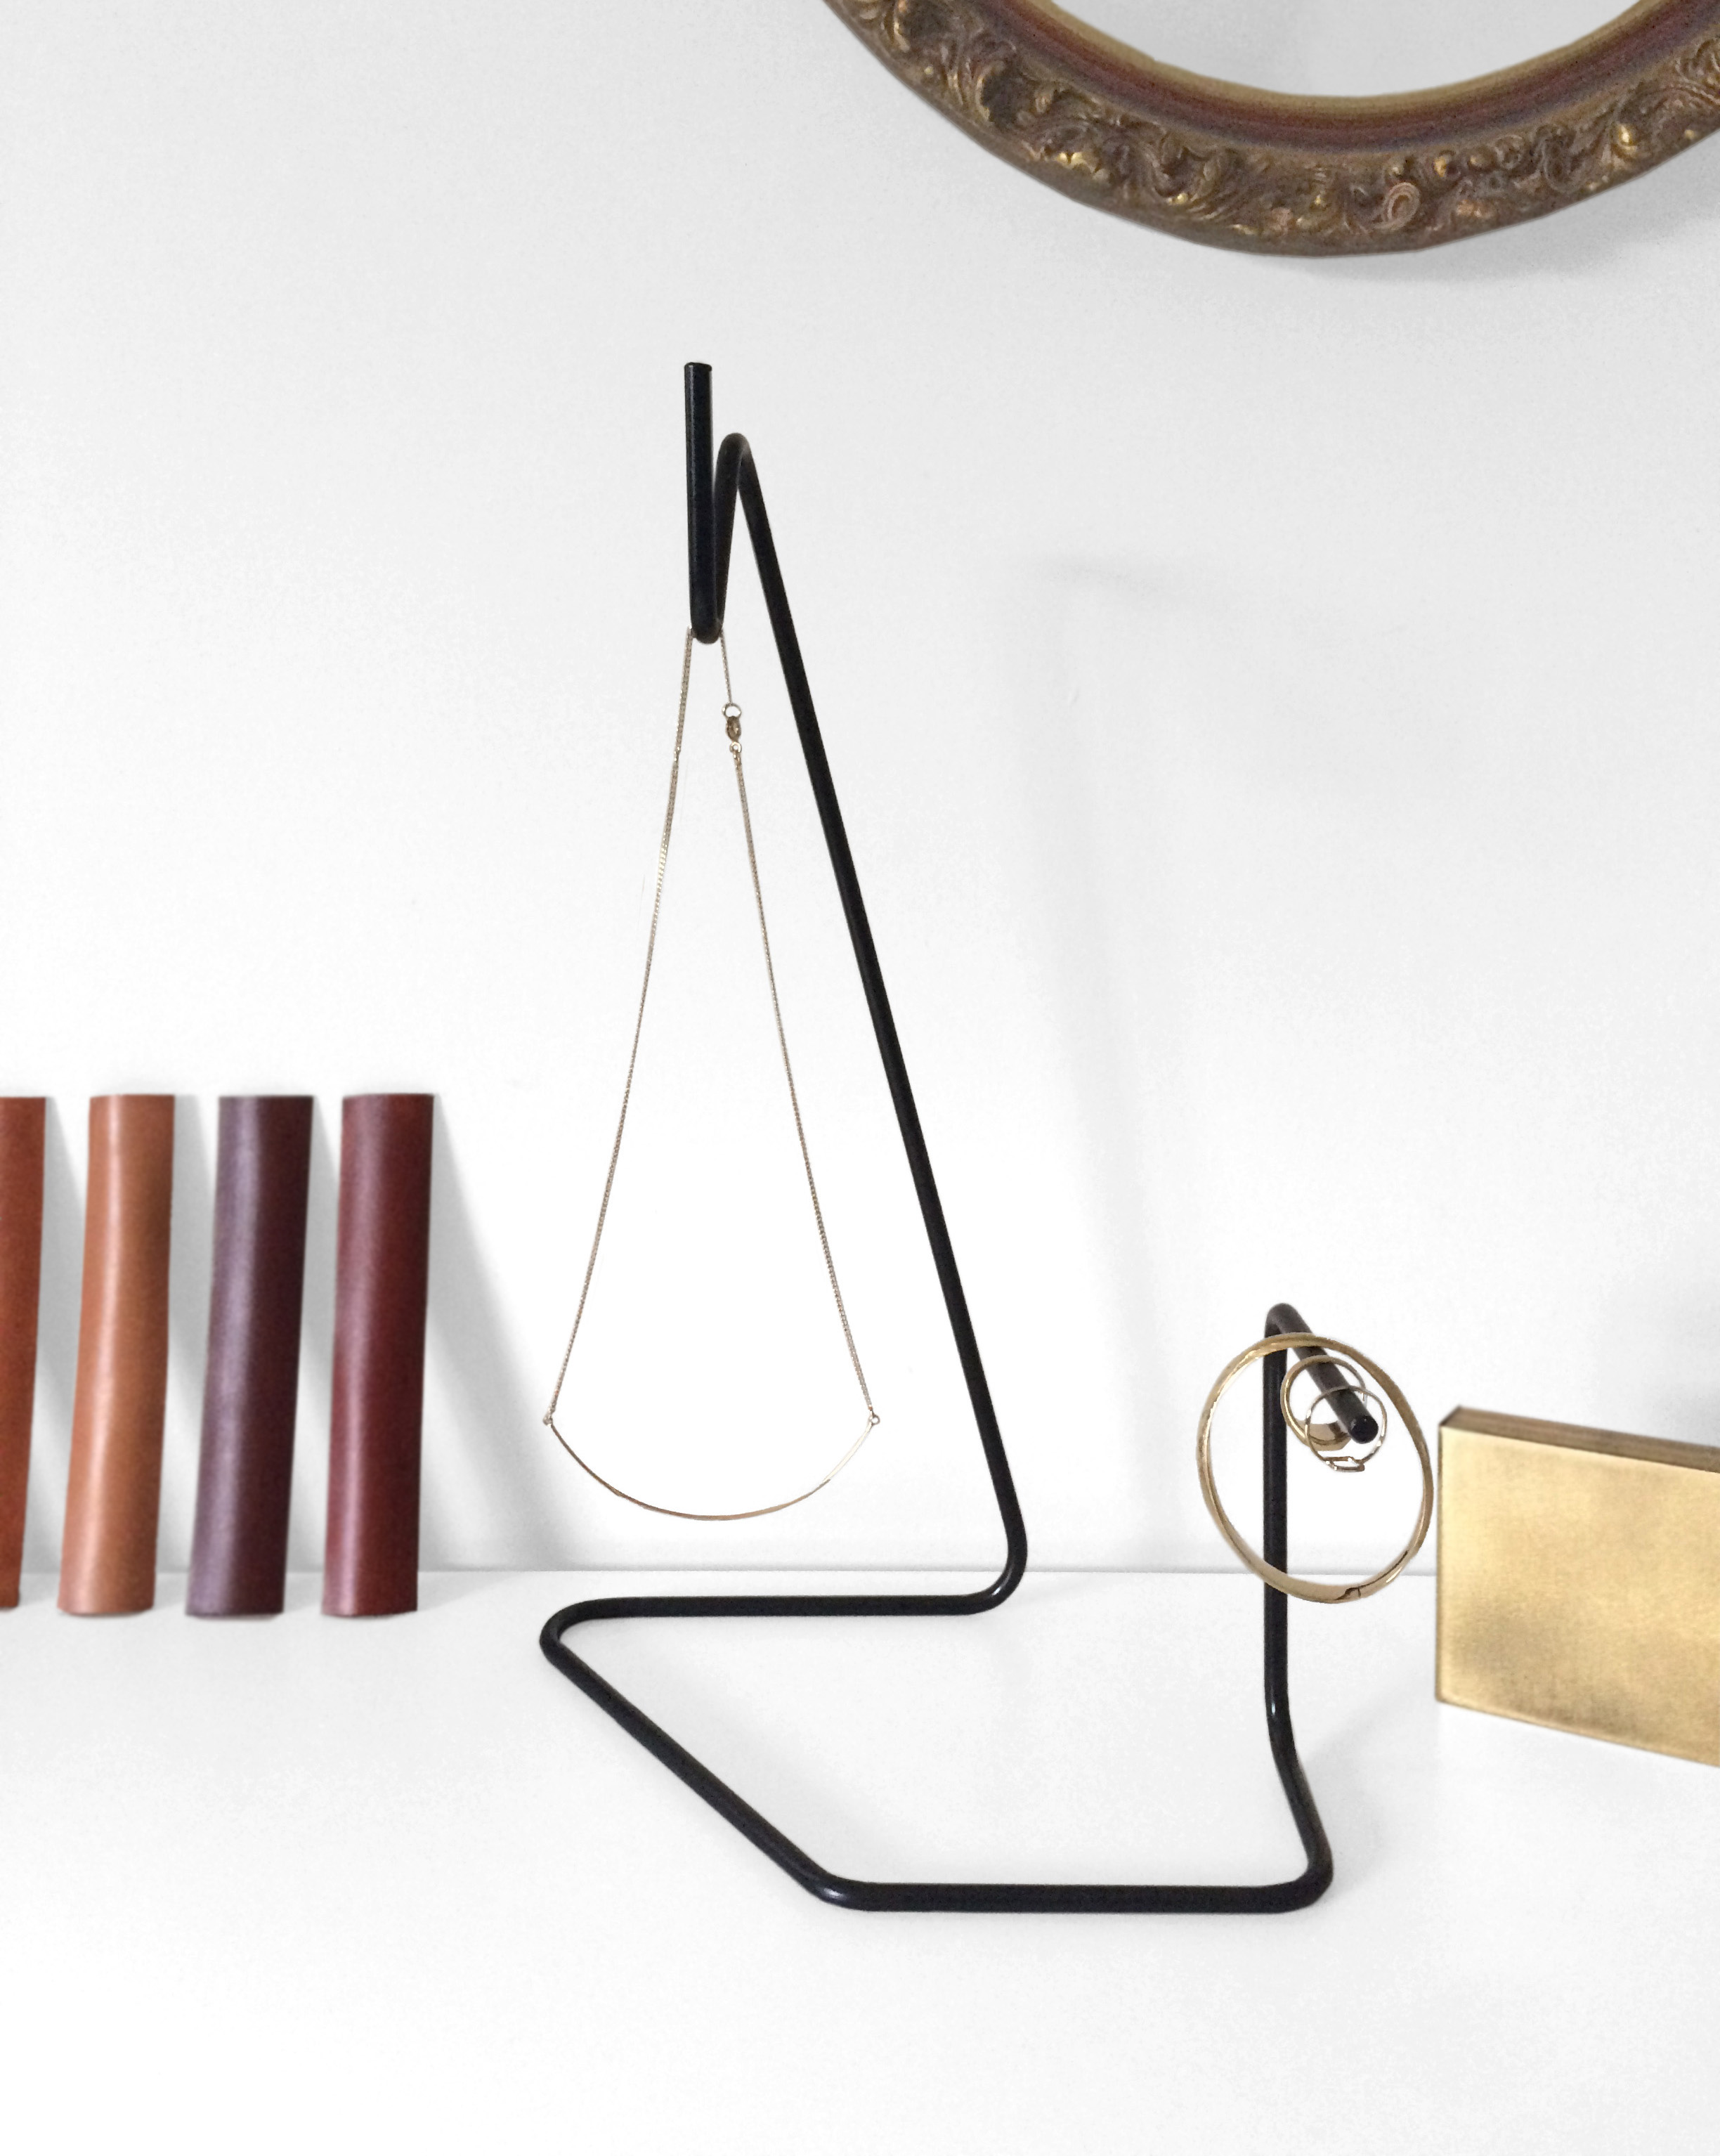 andrew-becker-design-bend-leather-wrapped-jewelry-stand-03.jpg